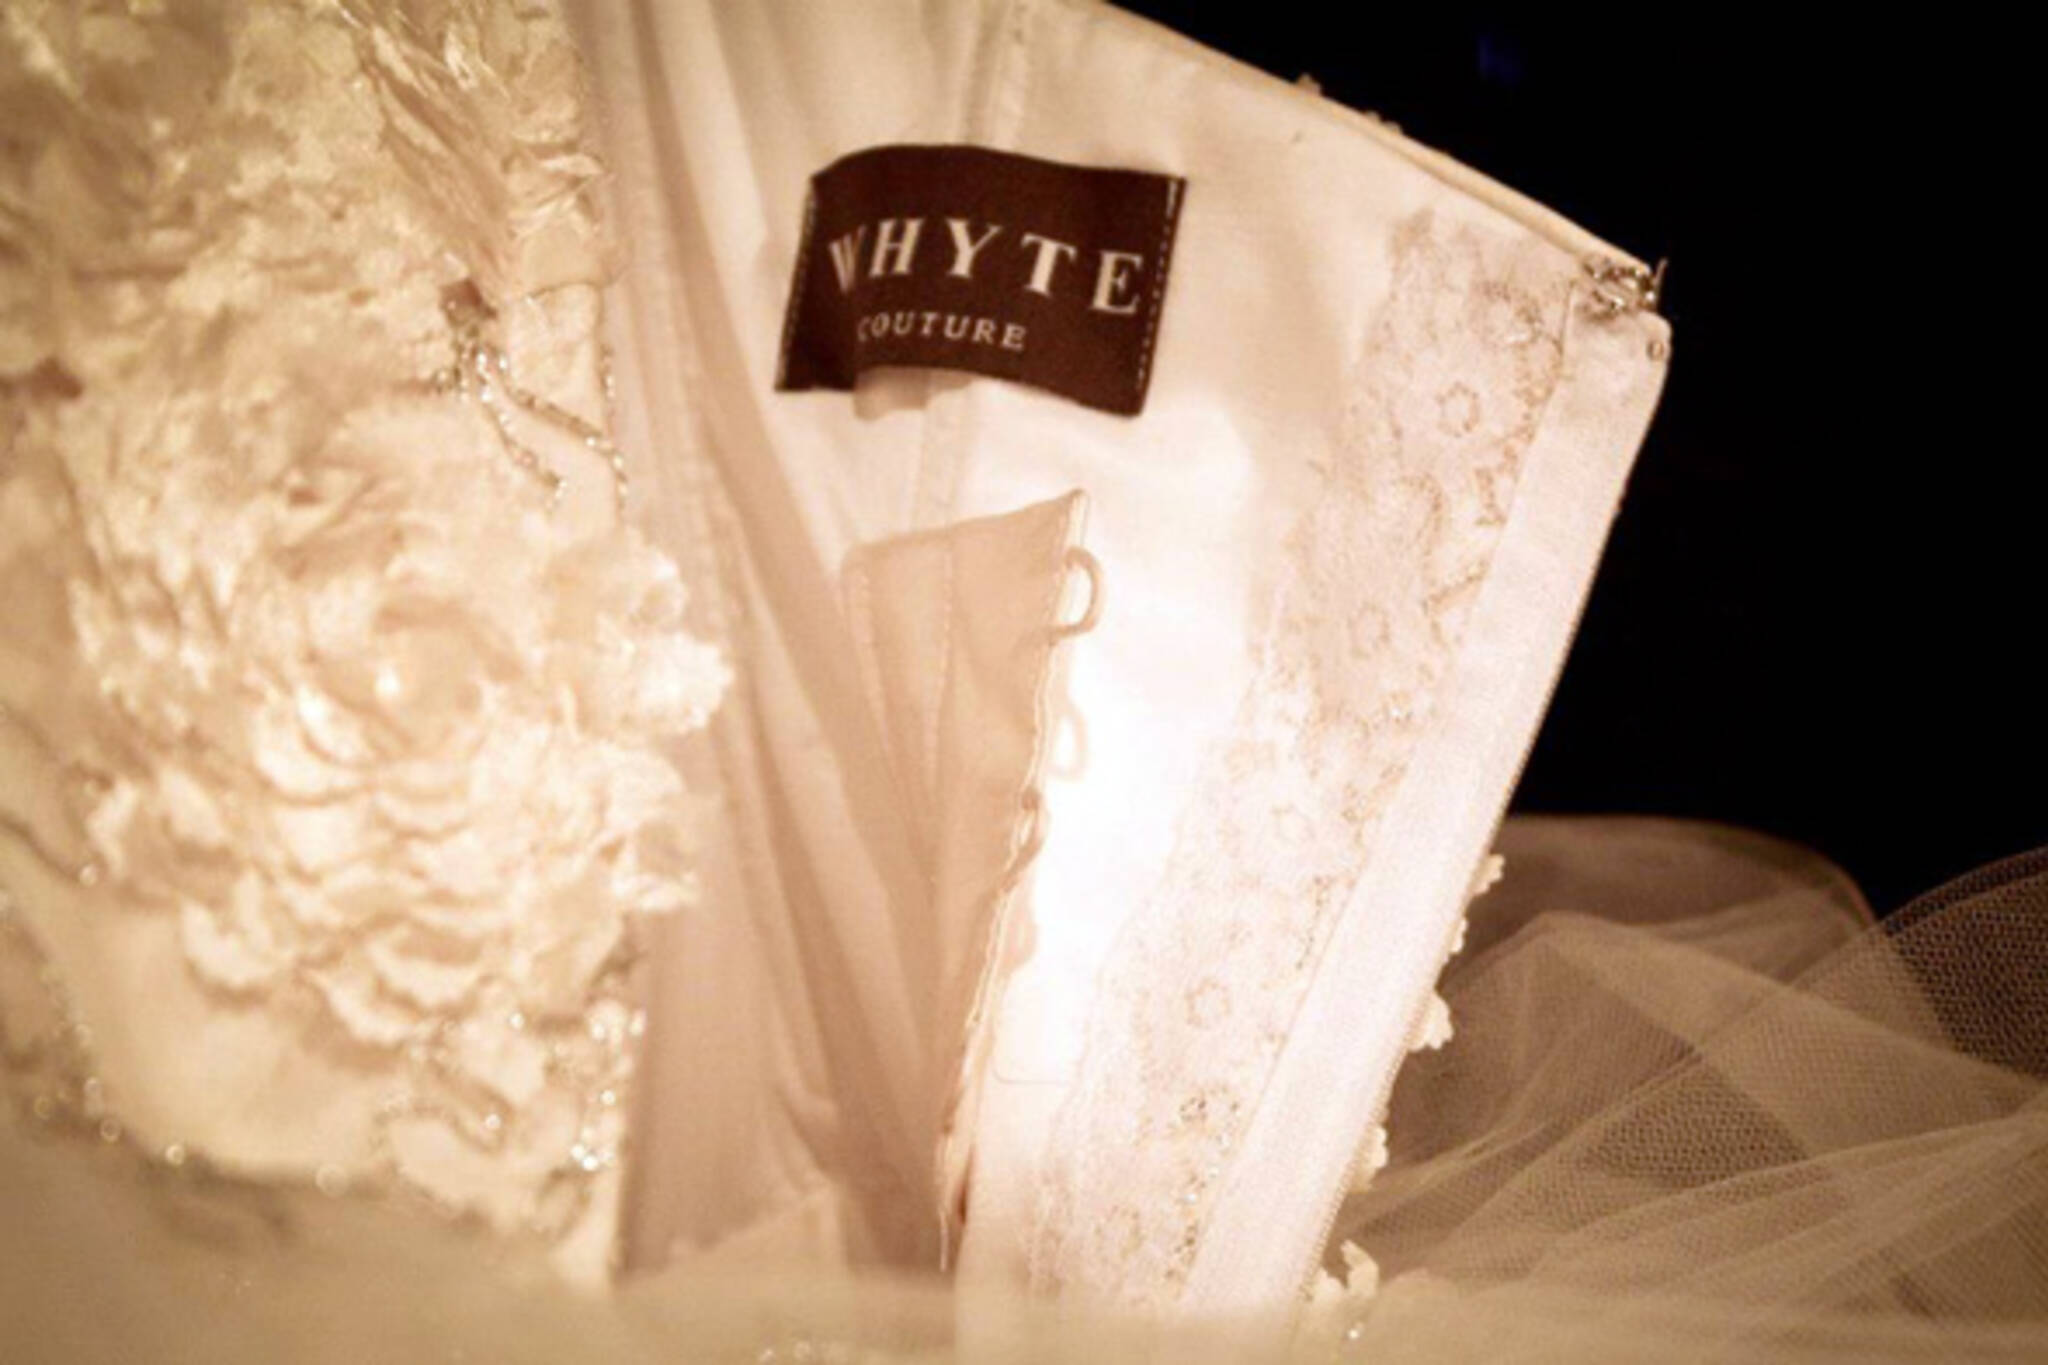 whyte couture toronto